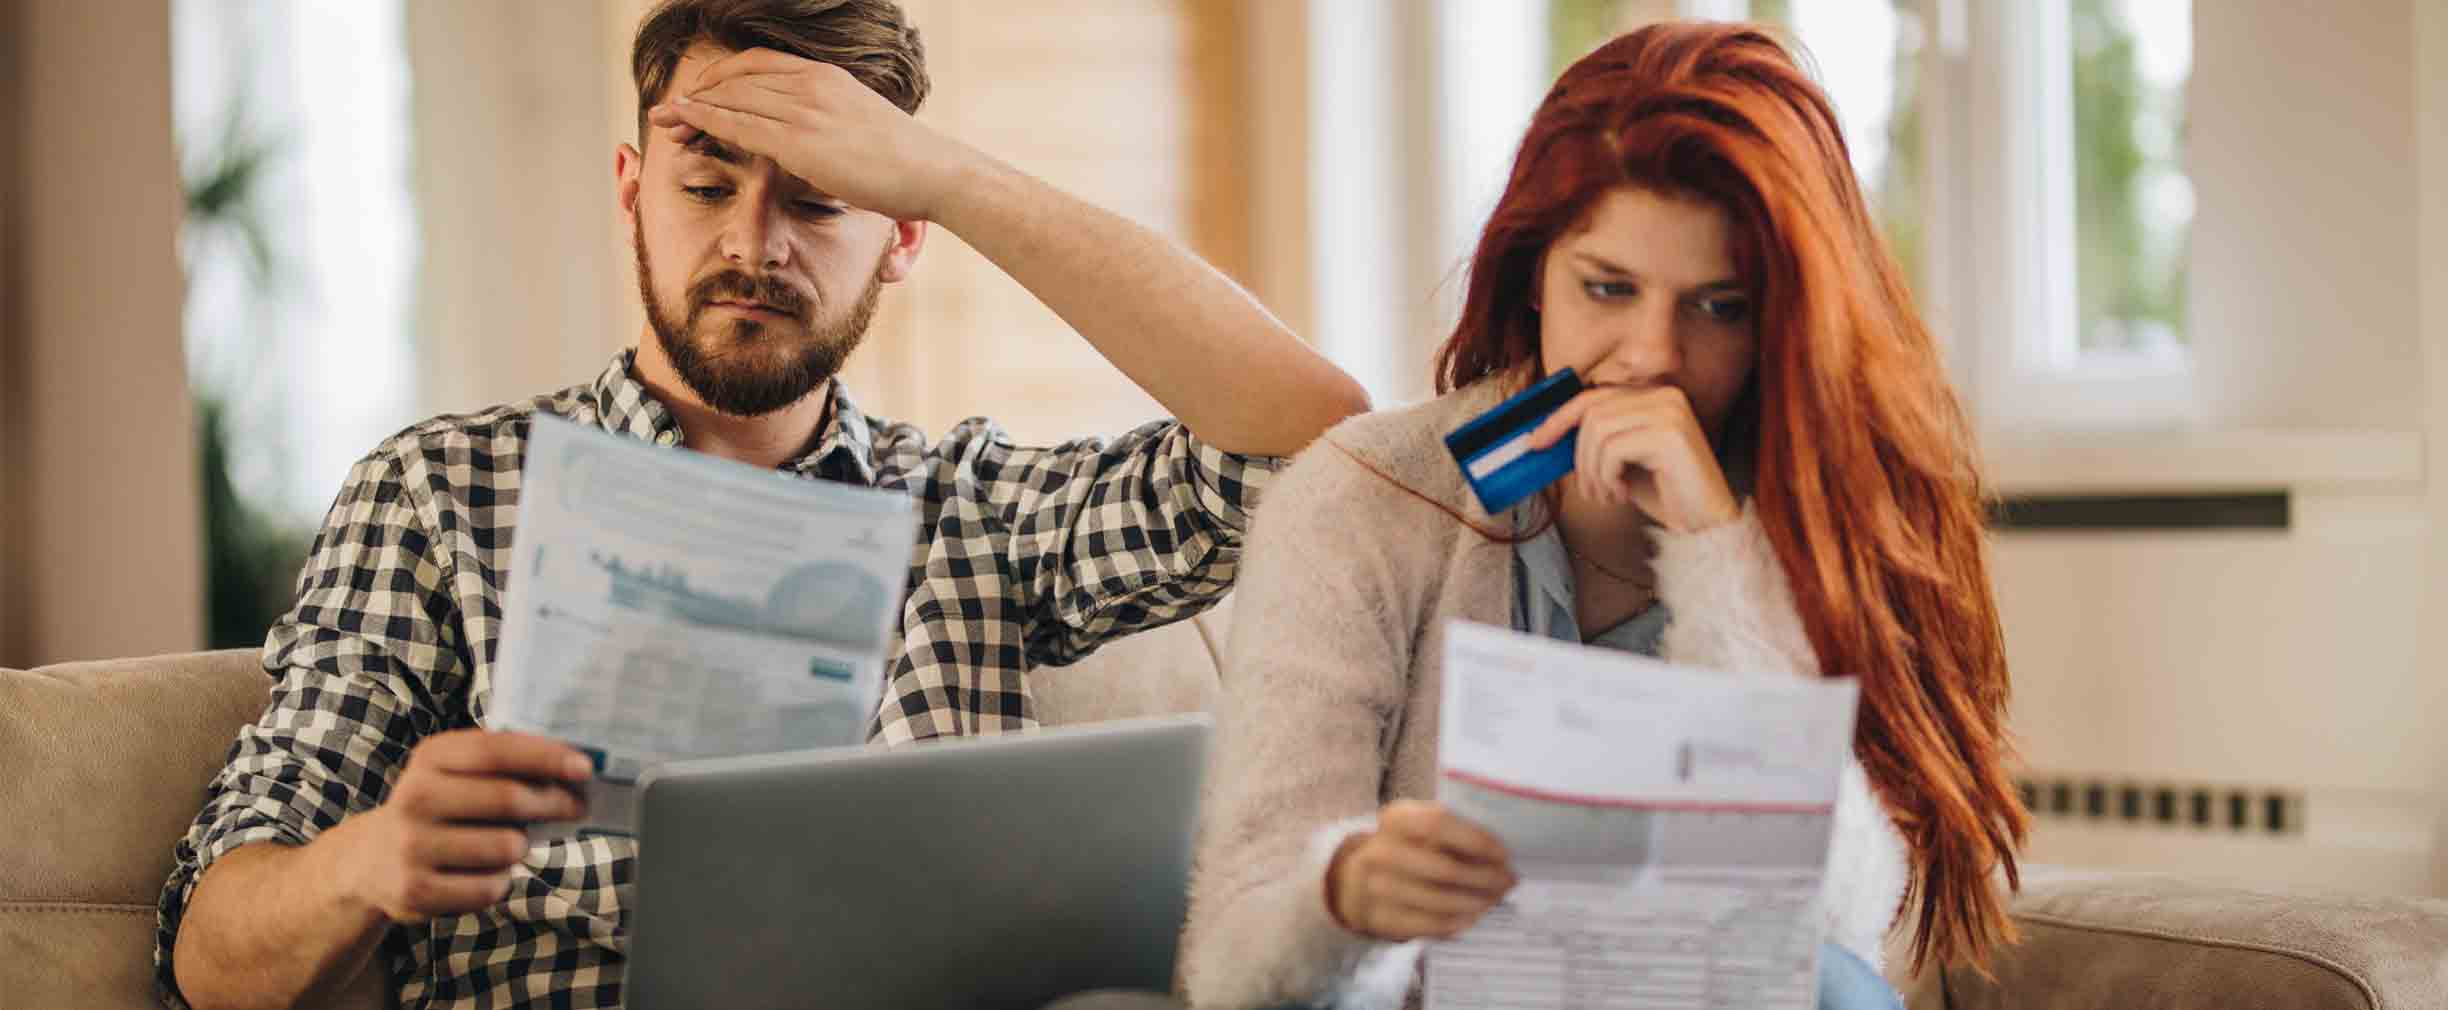 Worried couple feeling frustrated while holding a credit card and looking at a computer and bills